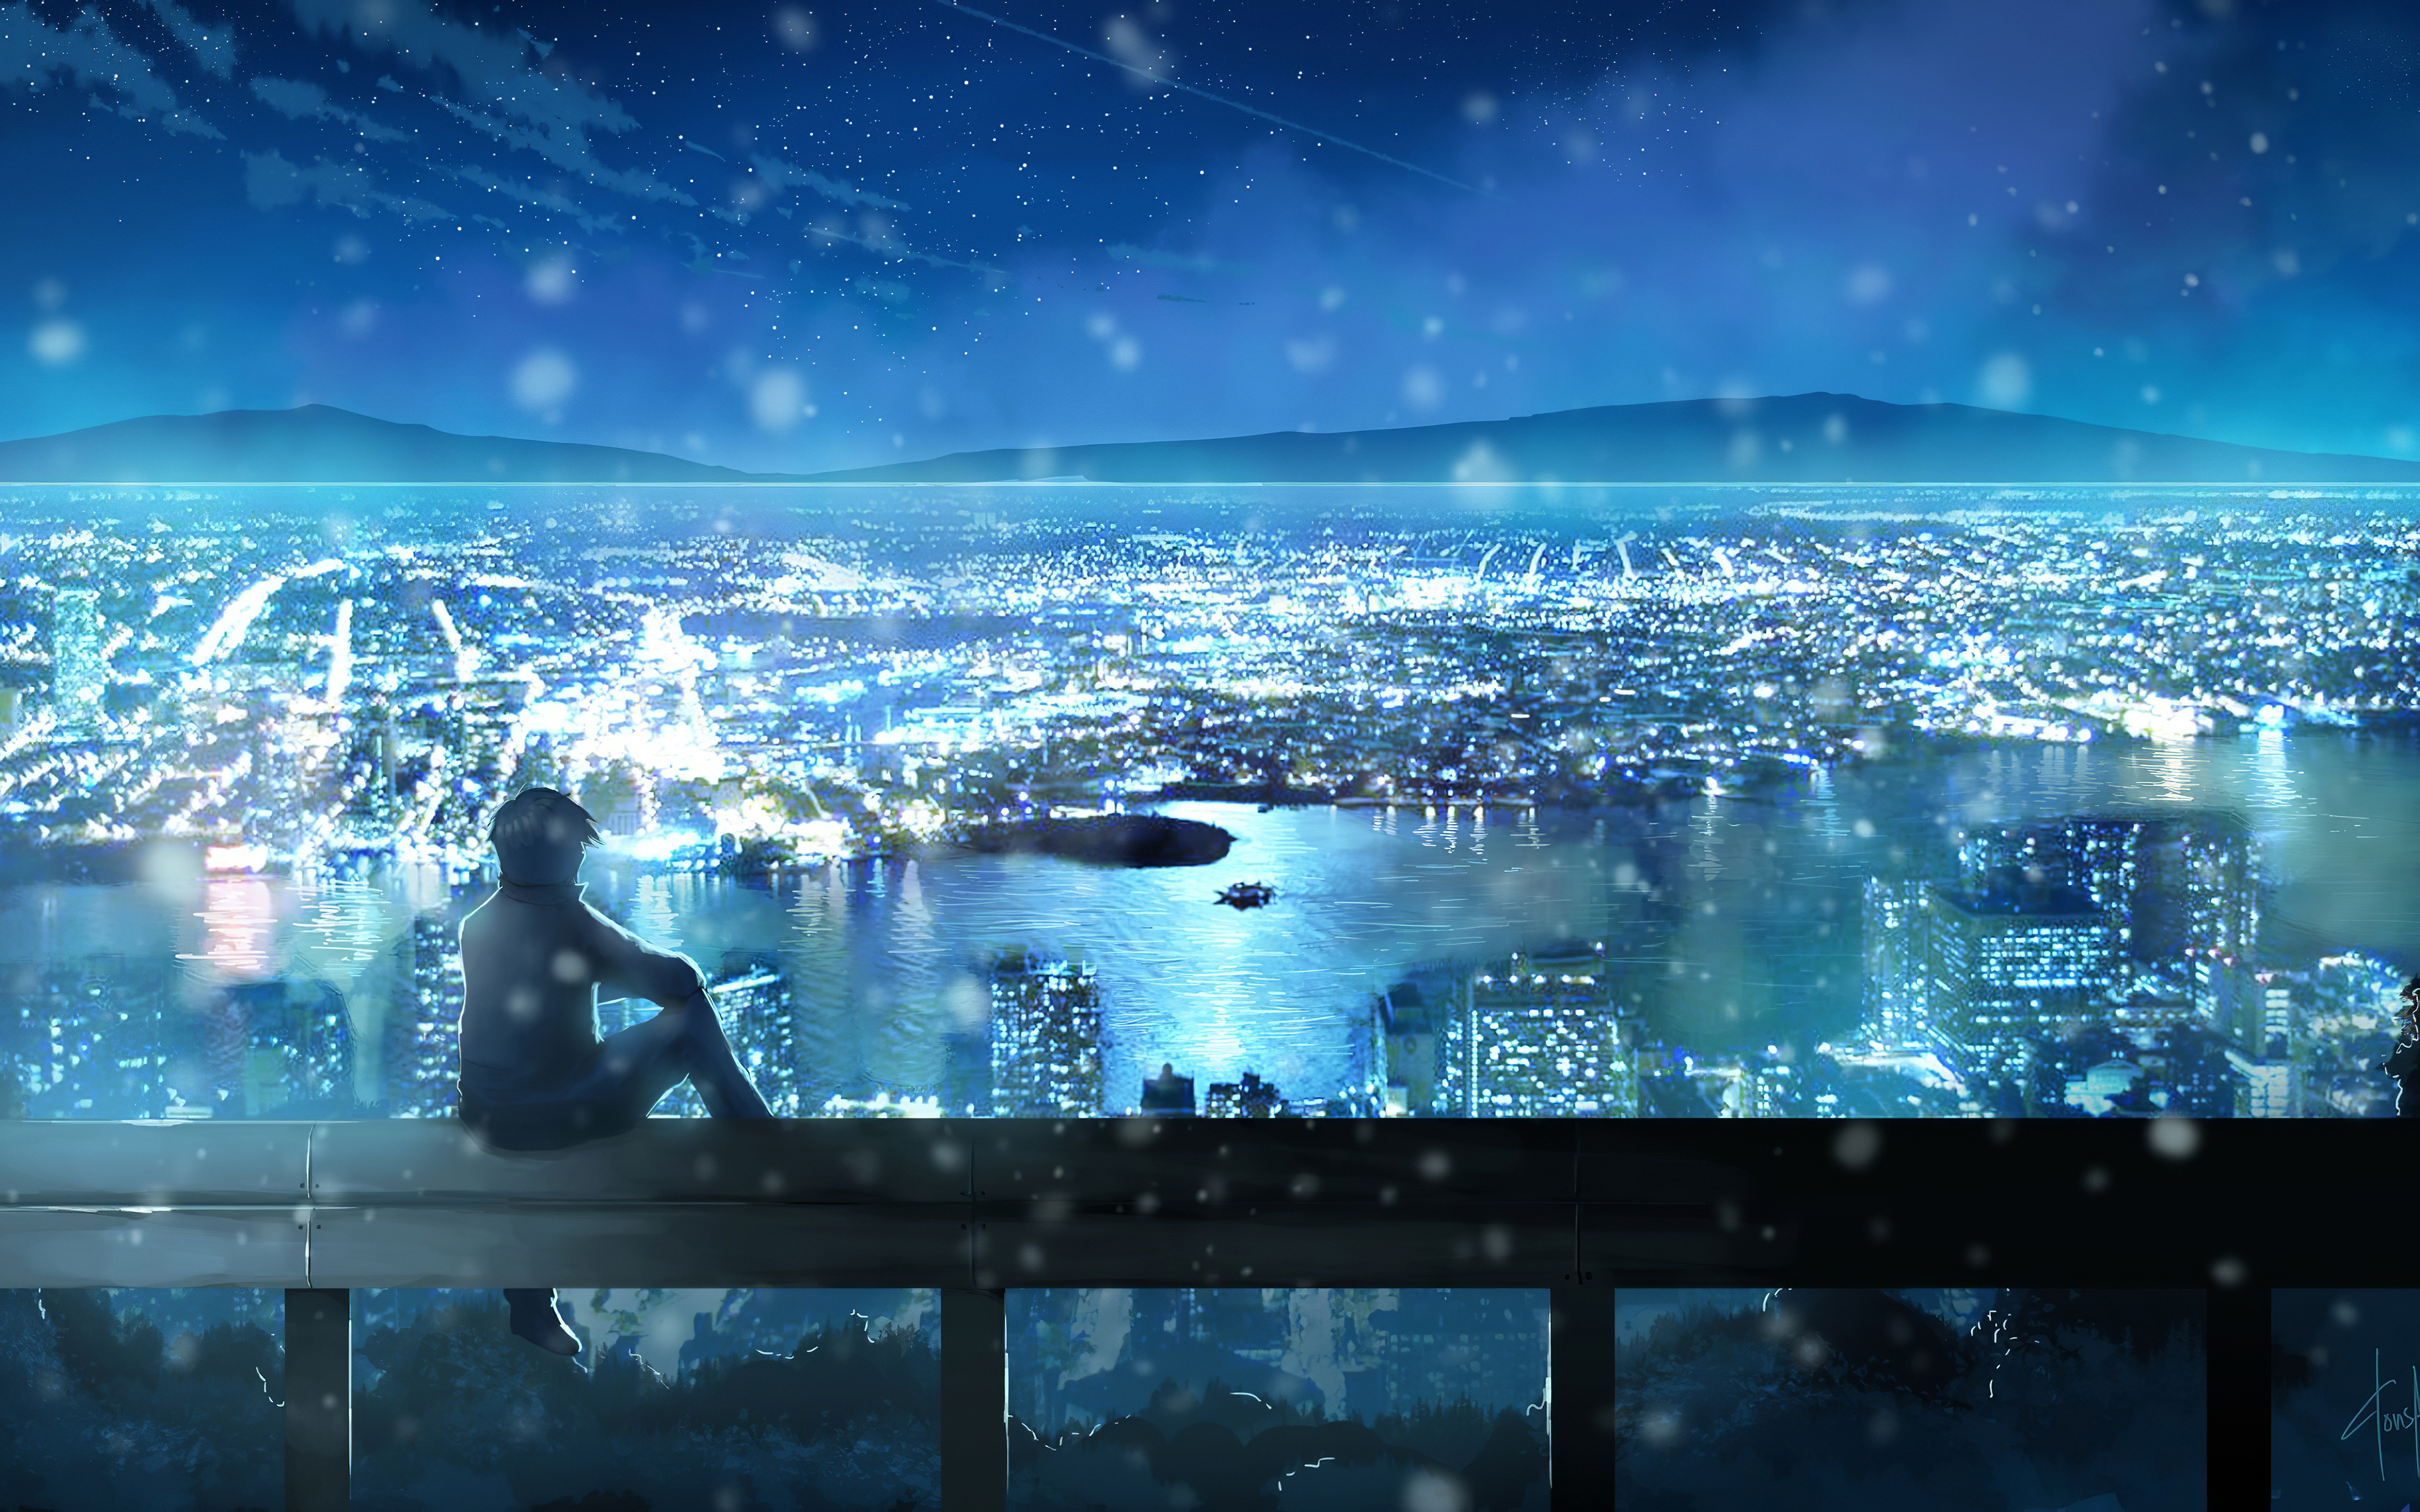 city looks nice from here anime 1578254337 - City Looks Nice From Here Anime -